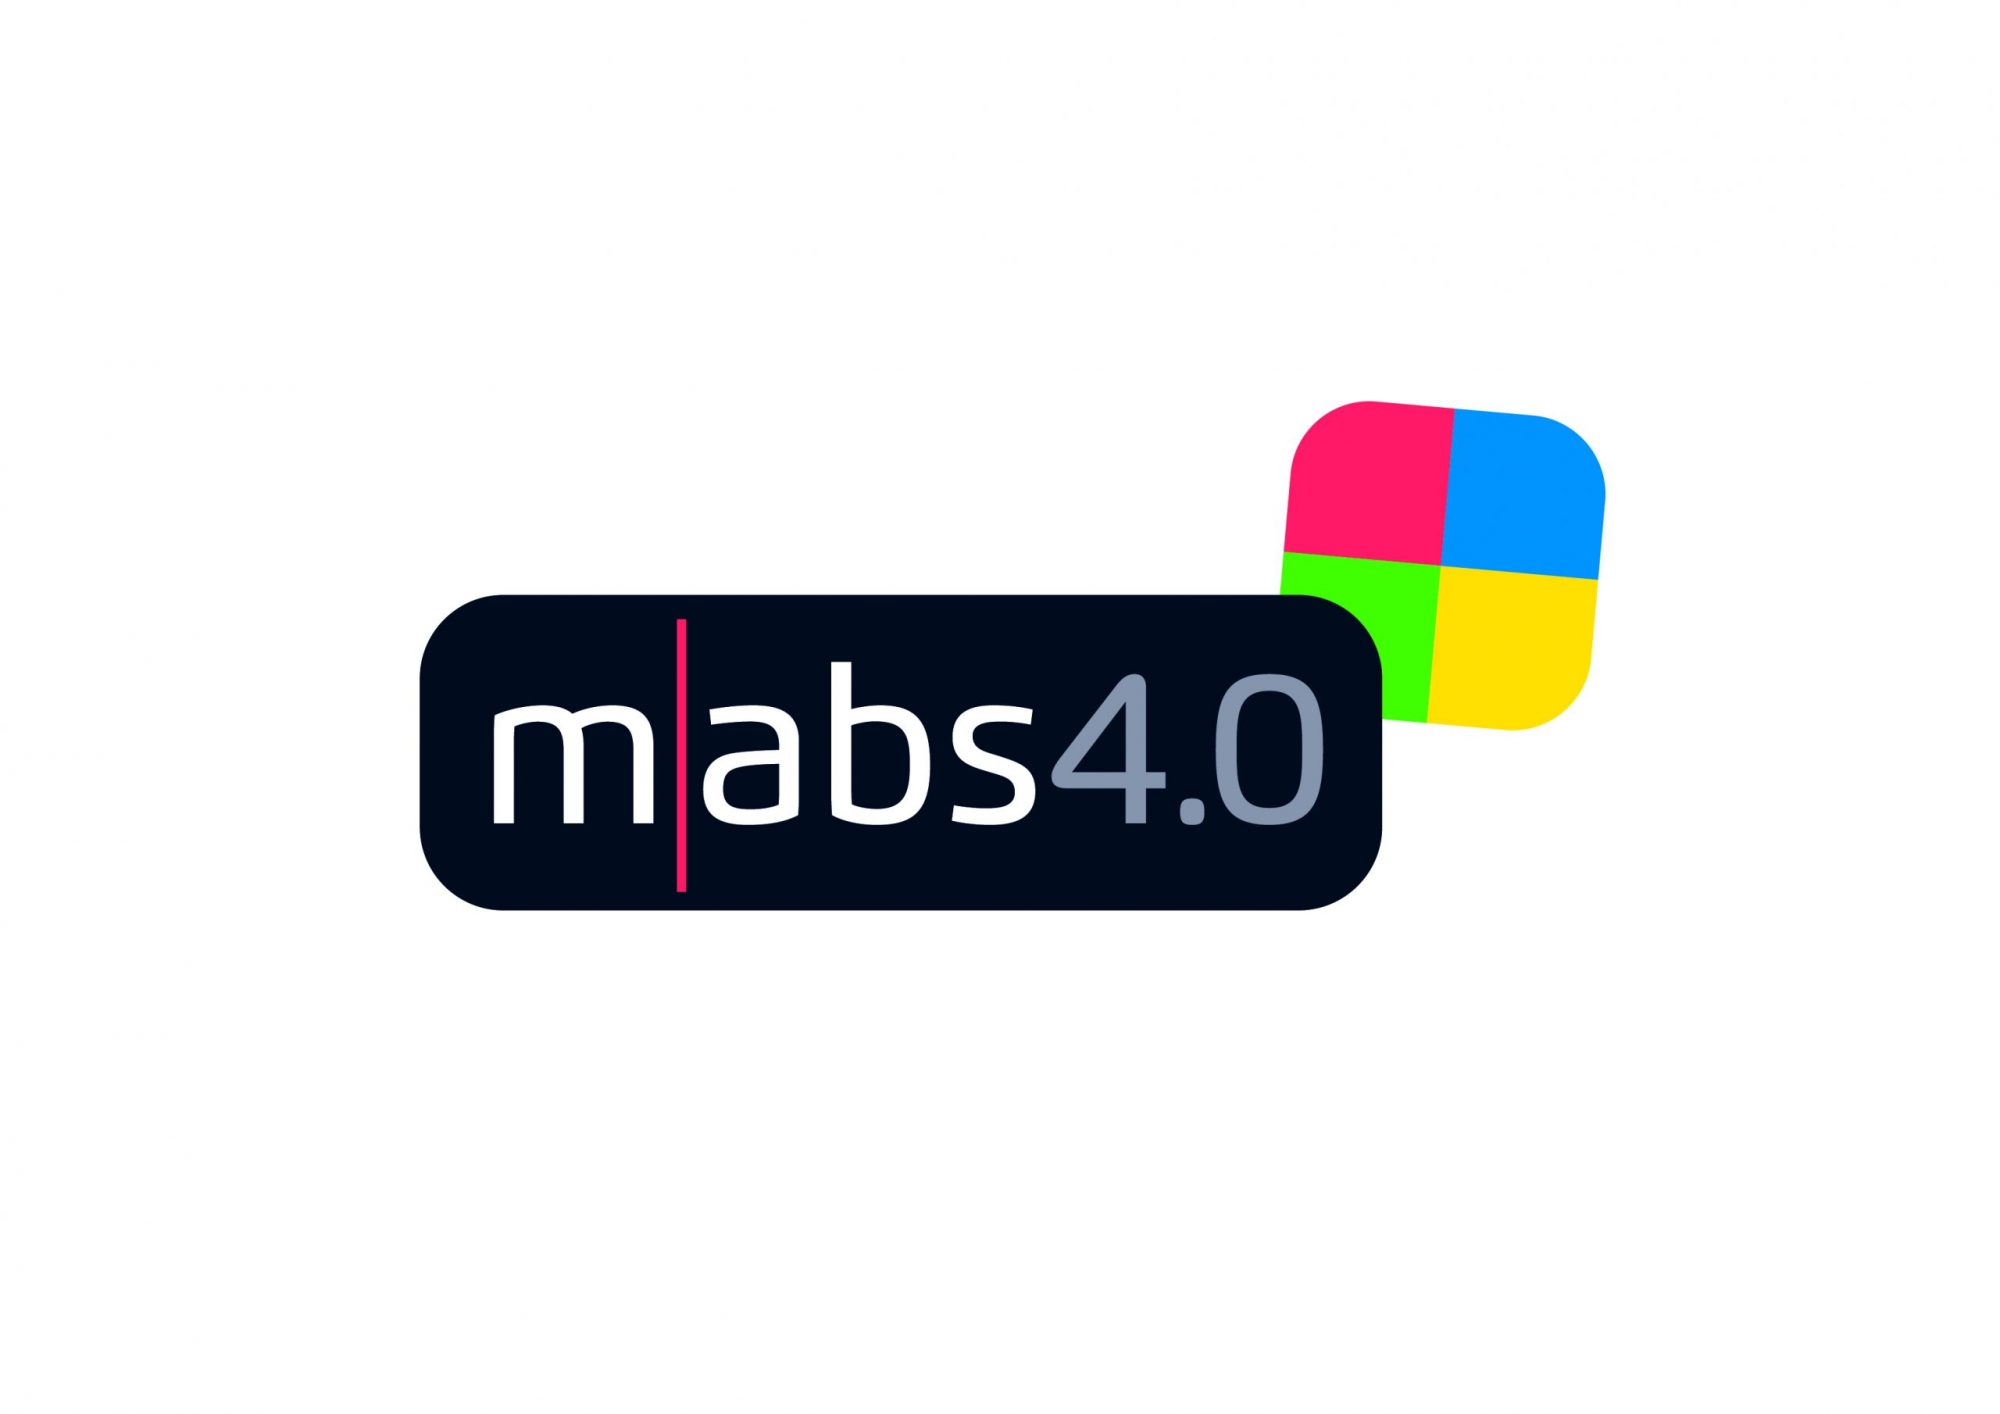 mabs-nl